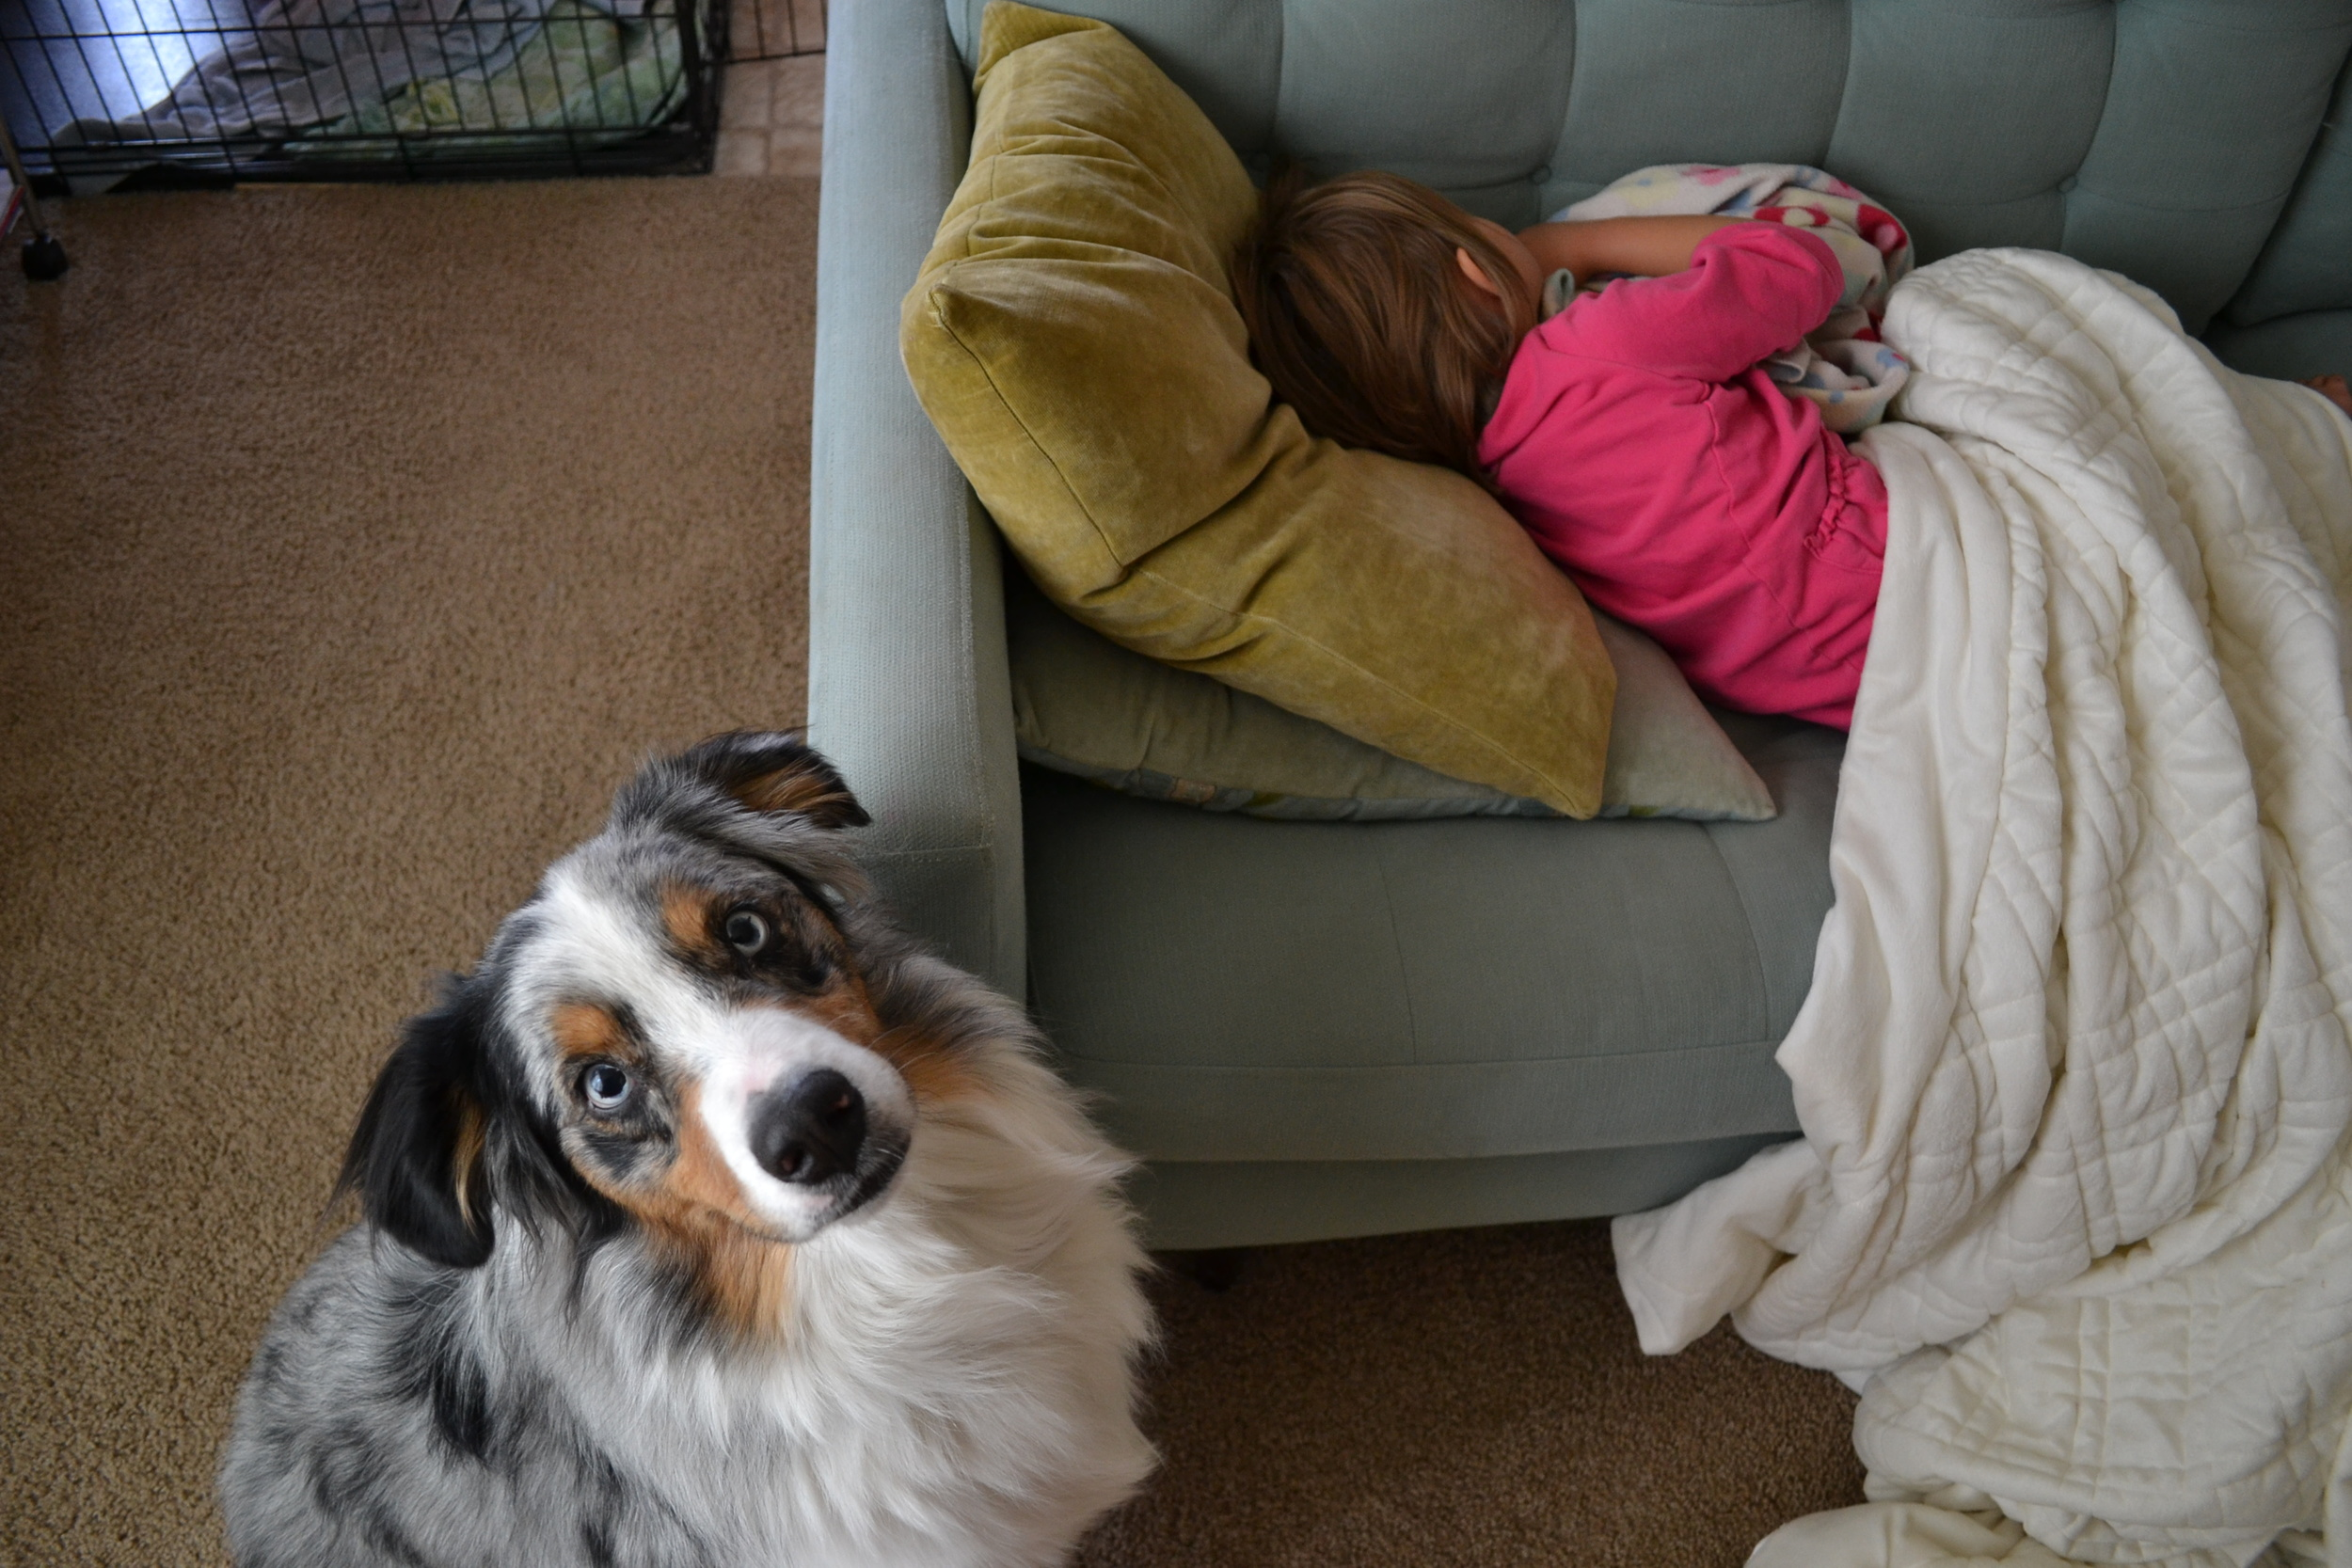 An Australian shepherd and sleeping child